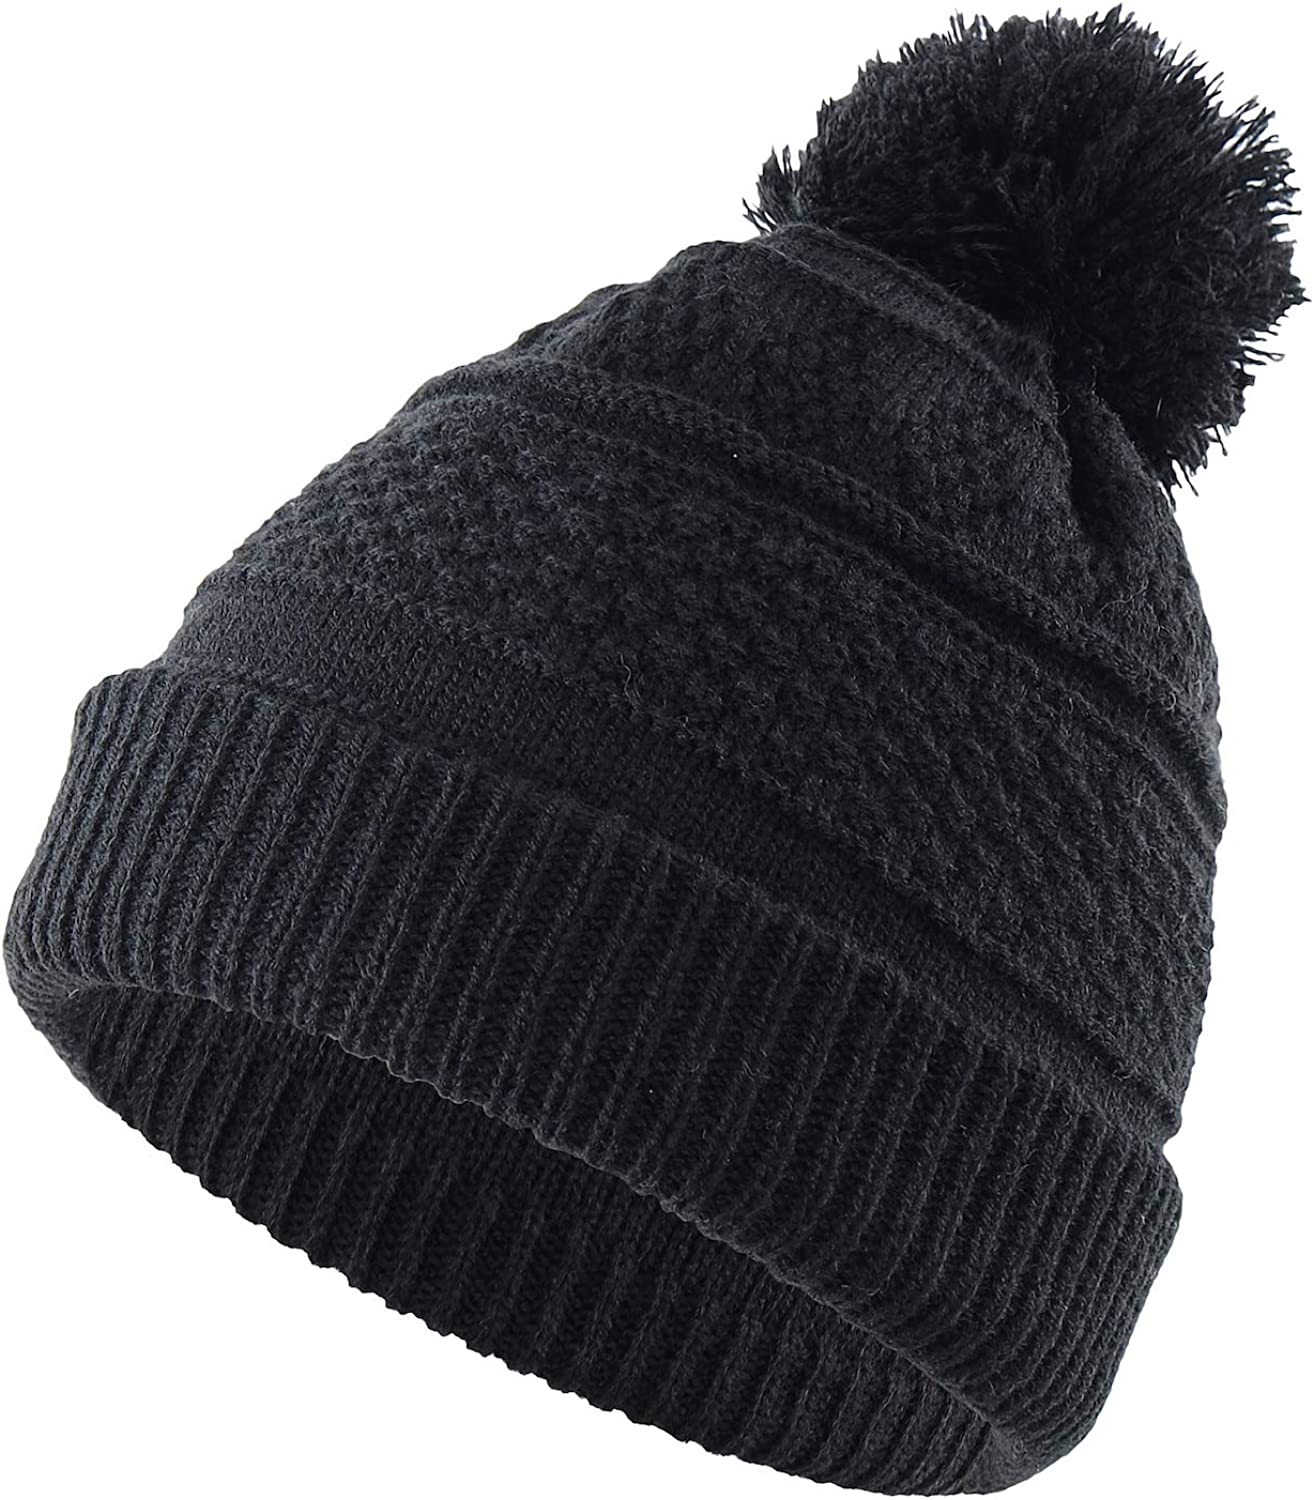 Home Prefer Toddler Winter Hat Warm Headwear Daily Beanie Cap Knitted Winter Caps for Boys Girls Black: Clothing, Shoes & Jewelry